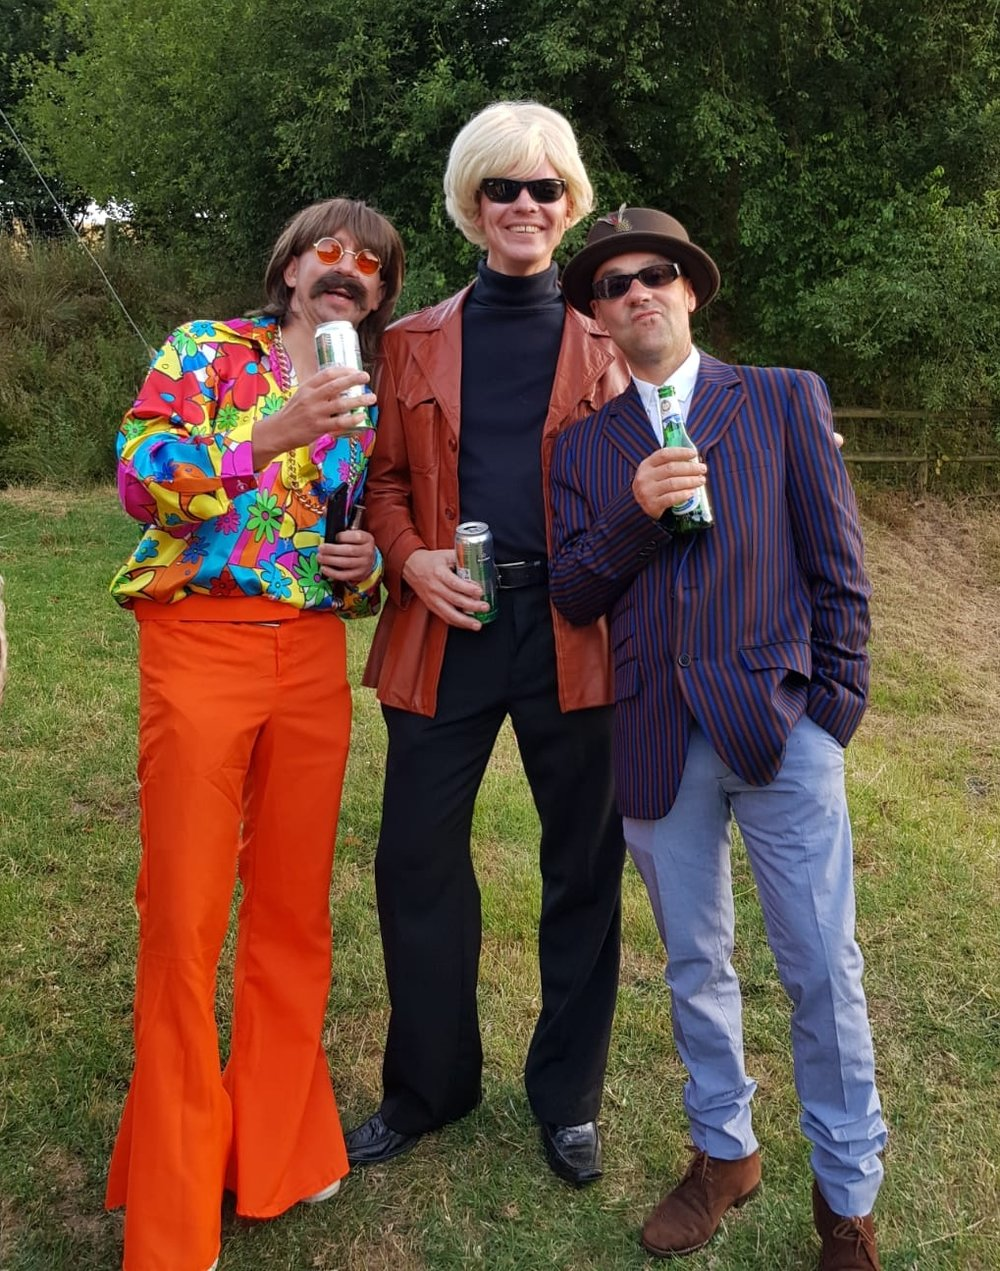 And three chumps ready to party likes it's err 1968.